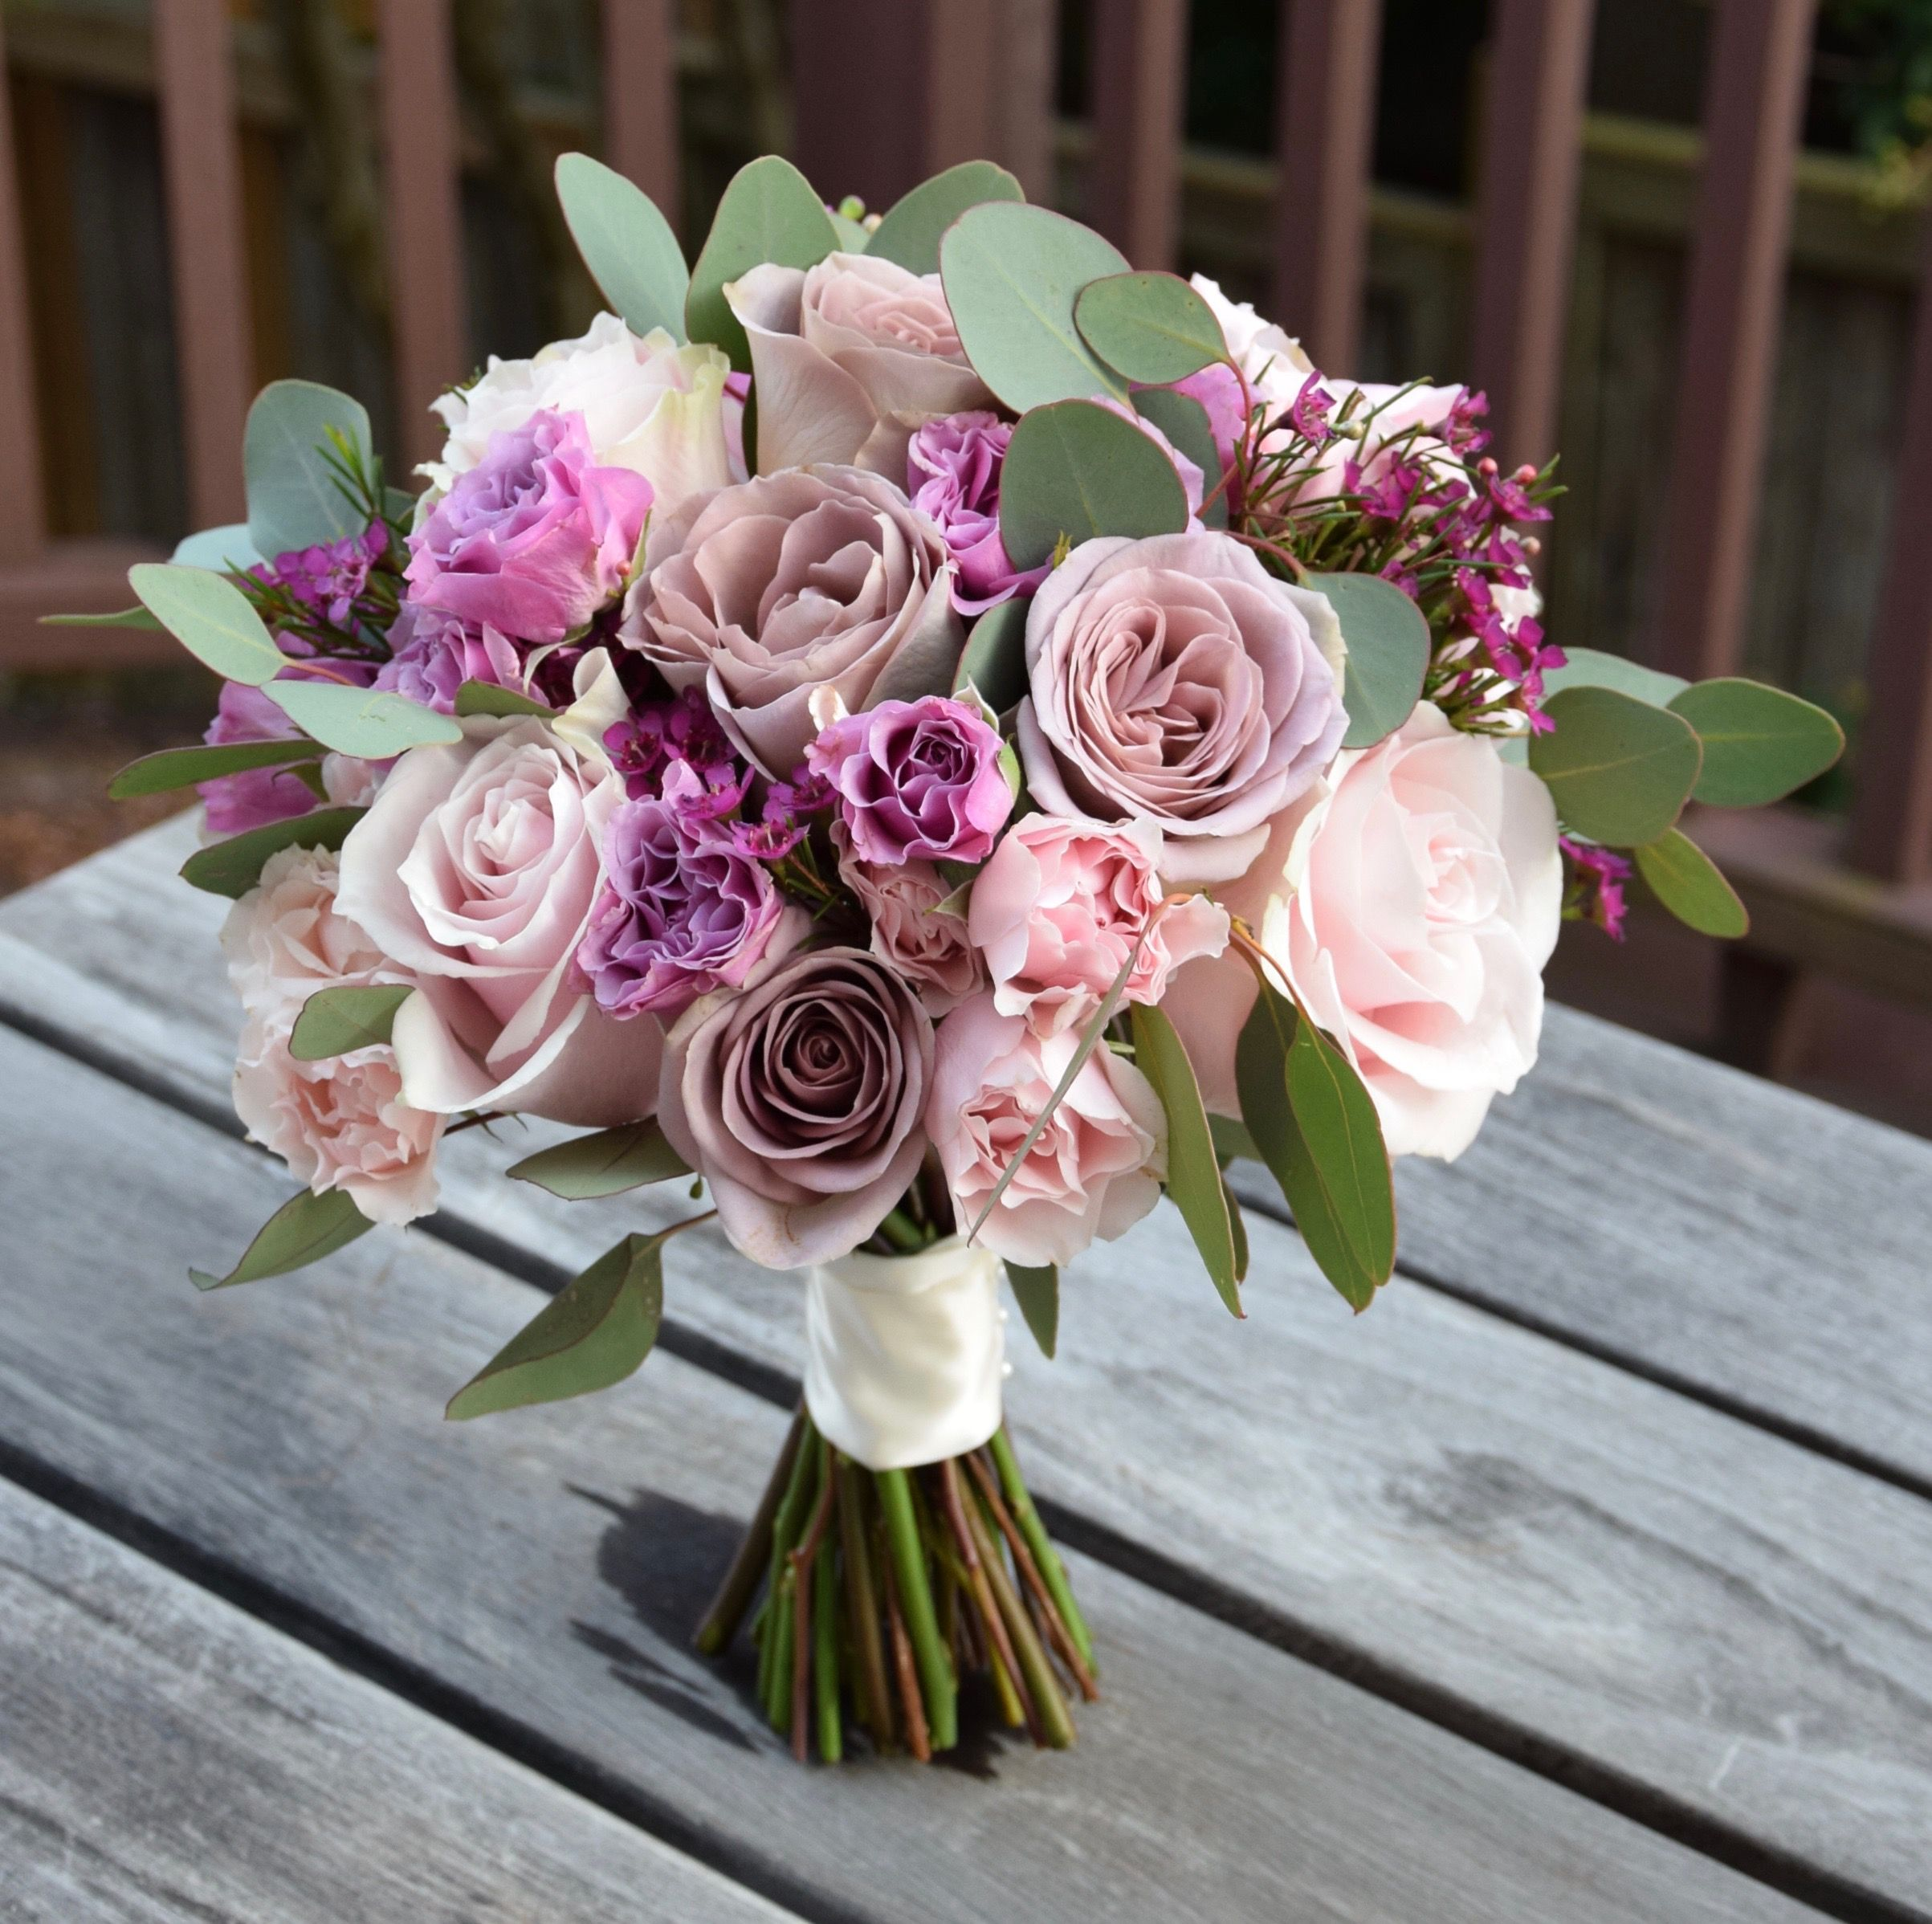 Bridesmaid S Flower Bouquet With Blush Pink And Lavender Color Tones Bridesmaid Flower Bouquet Flowers Bridesmaid Flowers